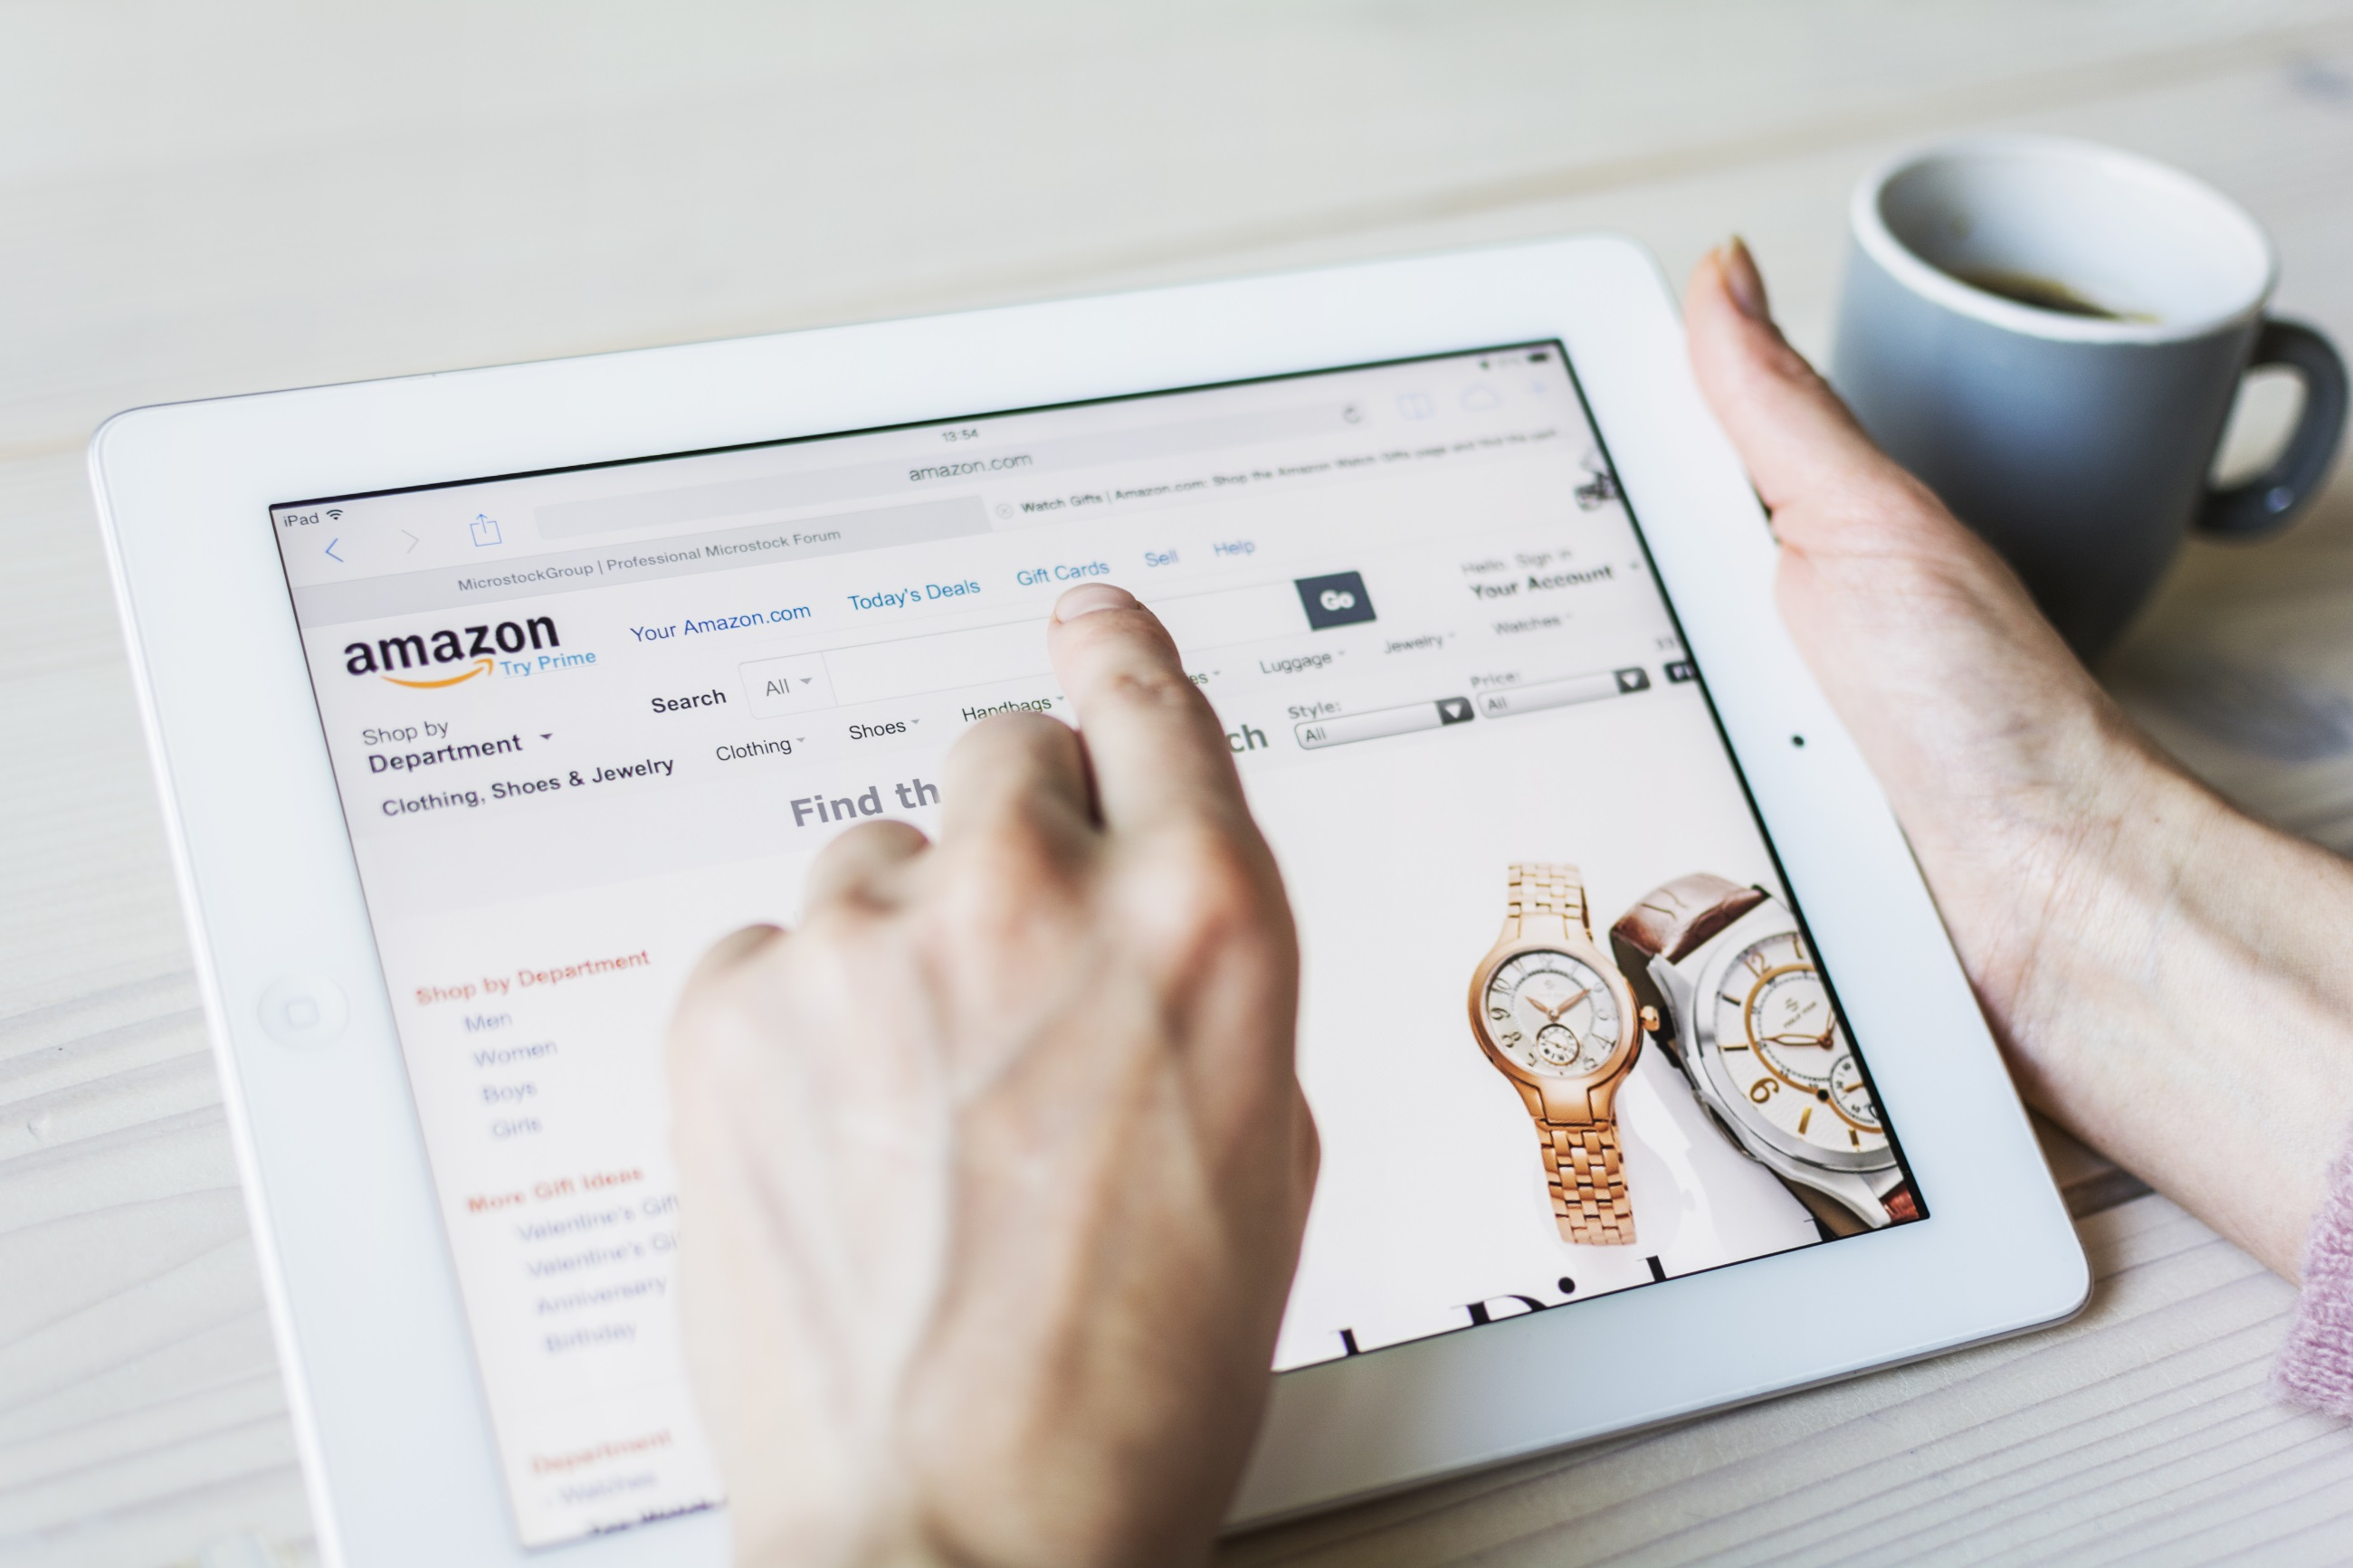 7 Things to consider for product listing in Amazon, Flipkart etc.